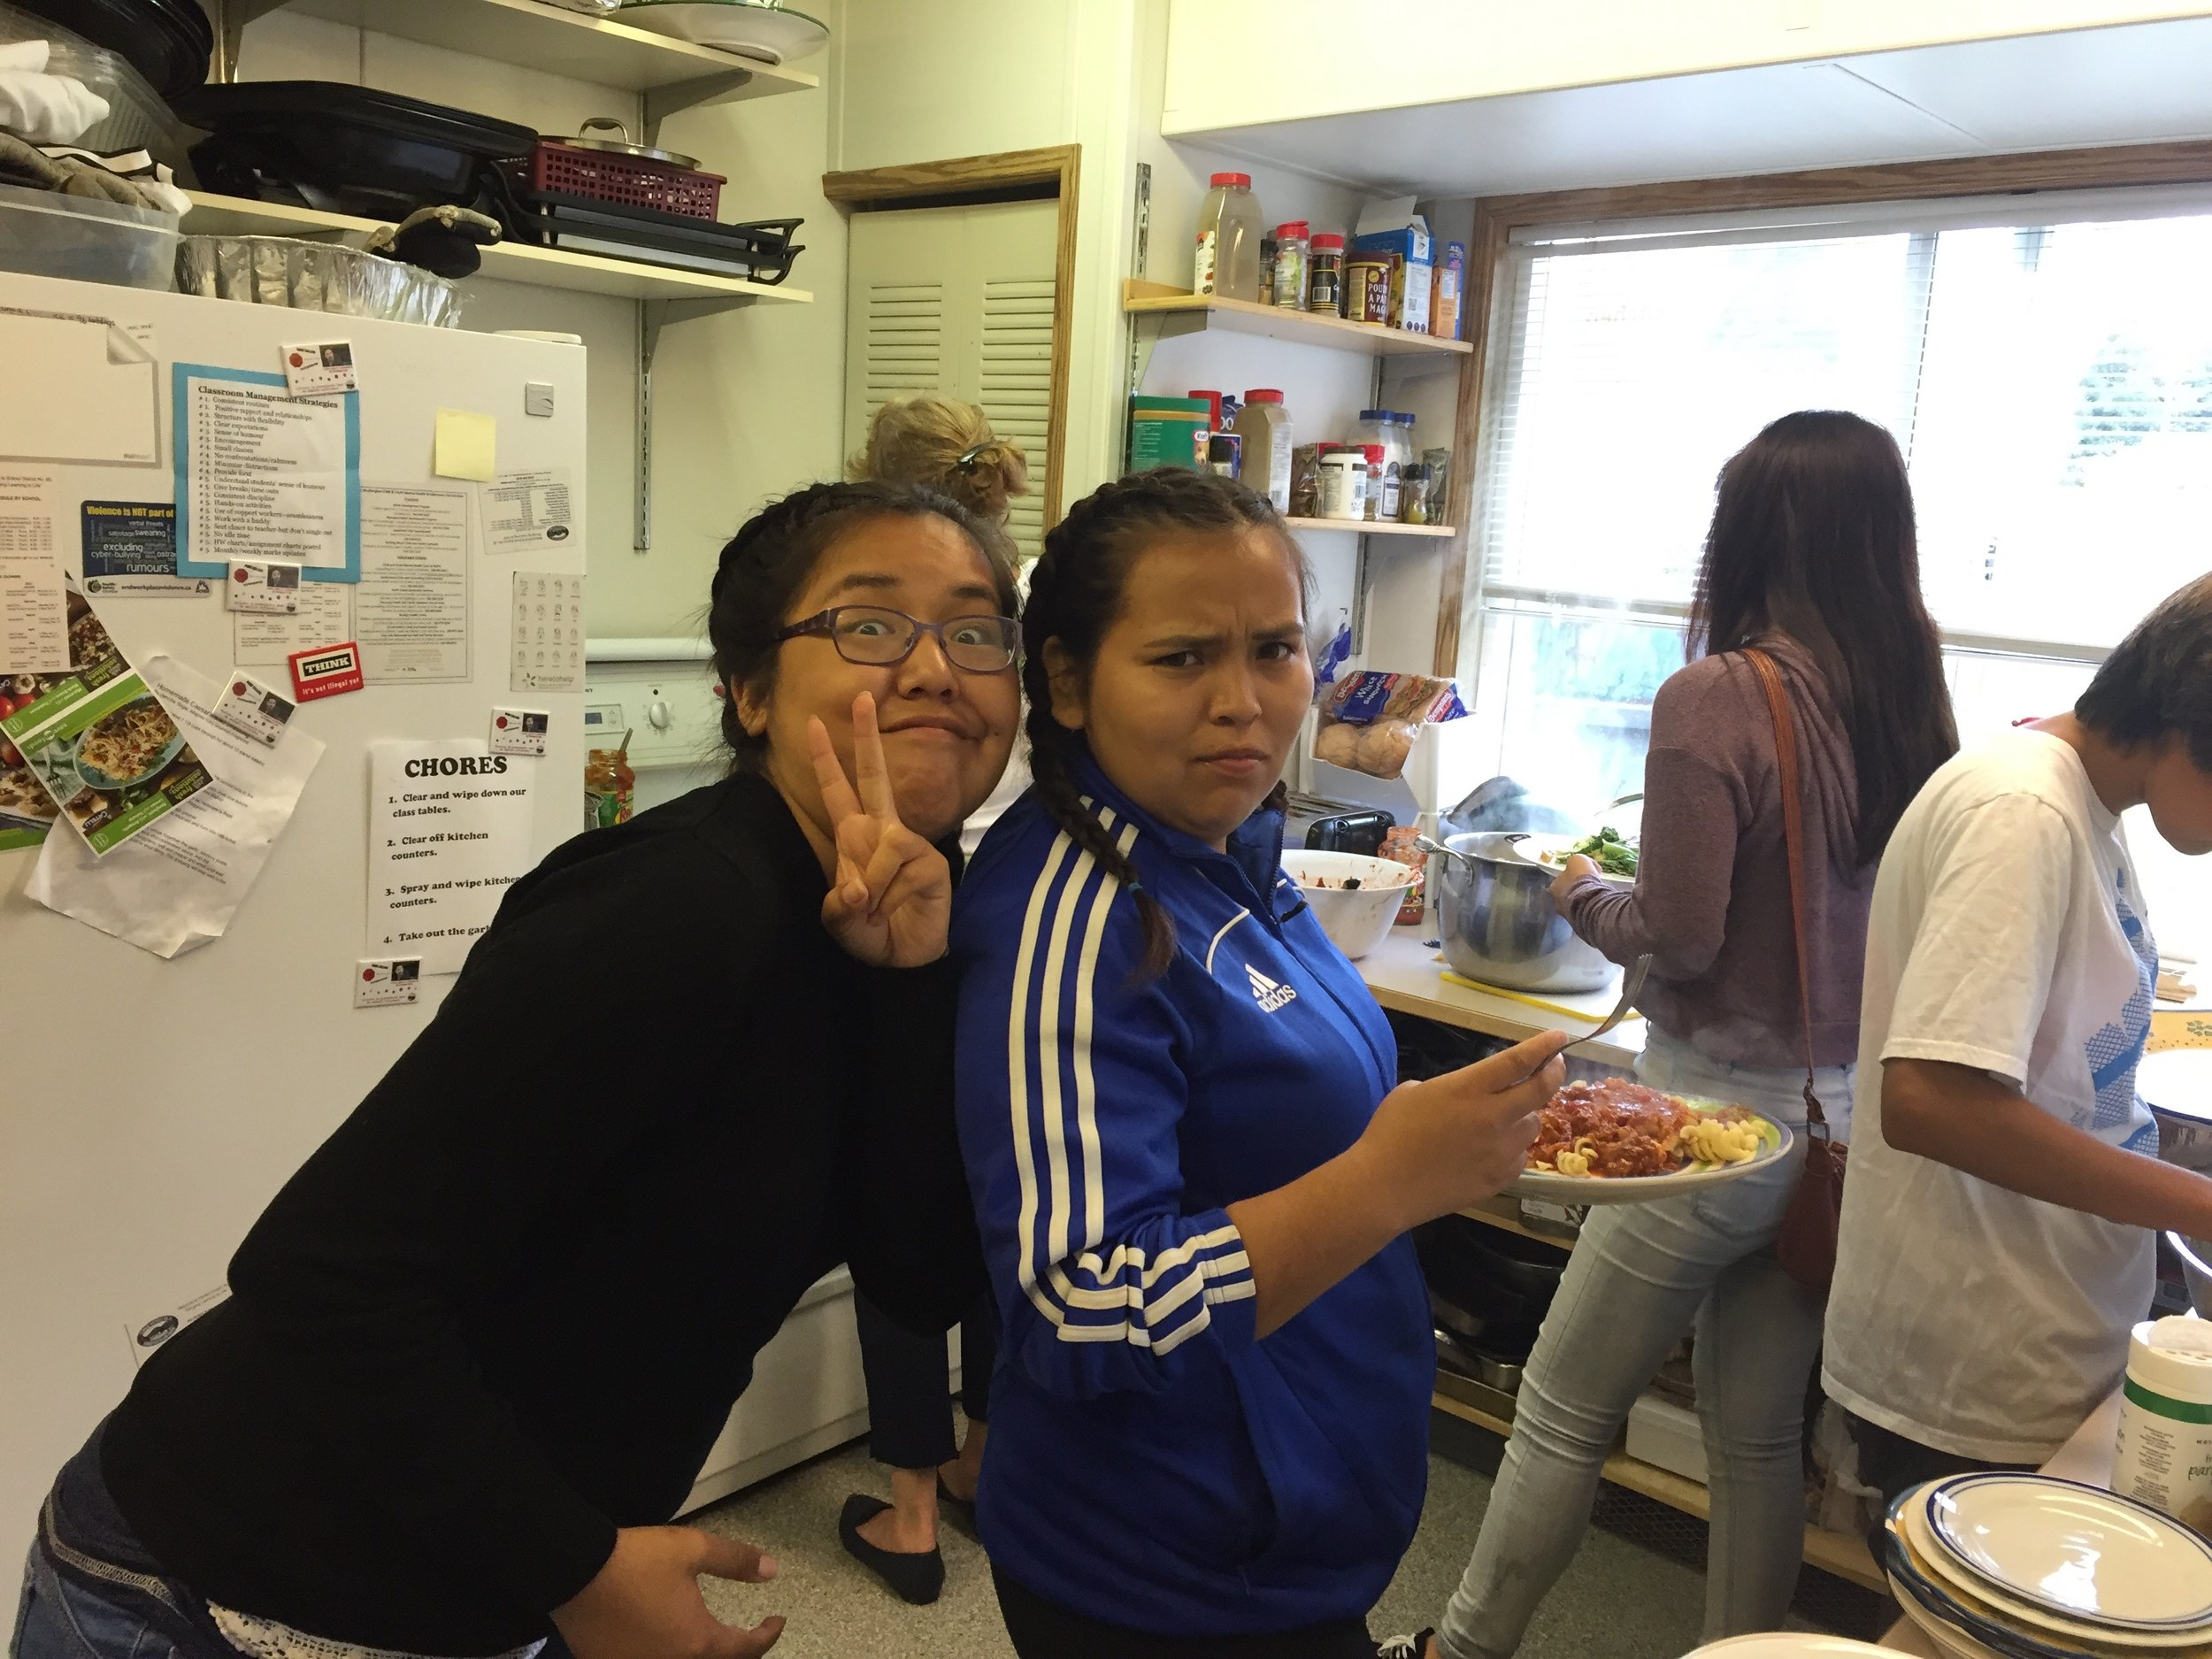 Lunch was provided by Eke Me-Xi (thanks Debbie and her student helpers!) Kelly and Roberta fill up on spaghetti